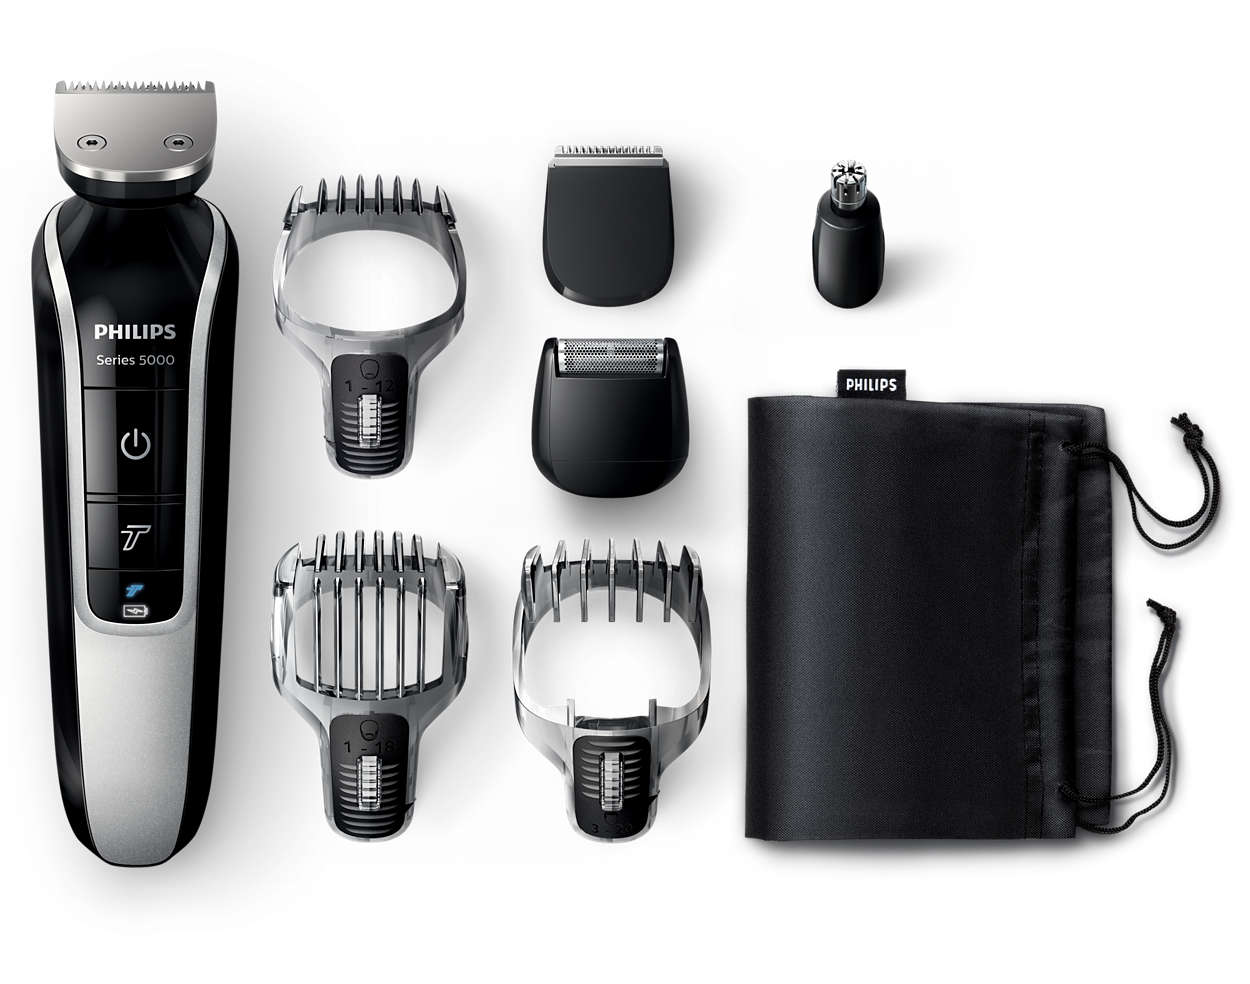 multigroom series 5000 lithium ion all in one trimmer qg3364 16 philips. Black Bedroom Furniture Sets. Home Design Ideas